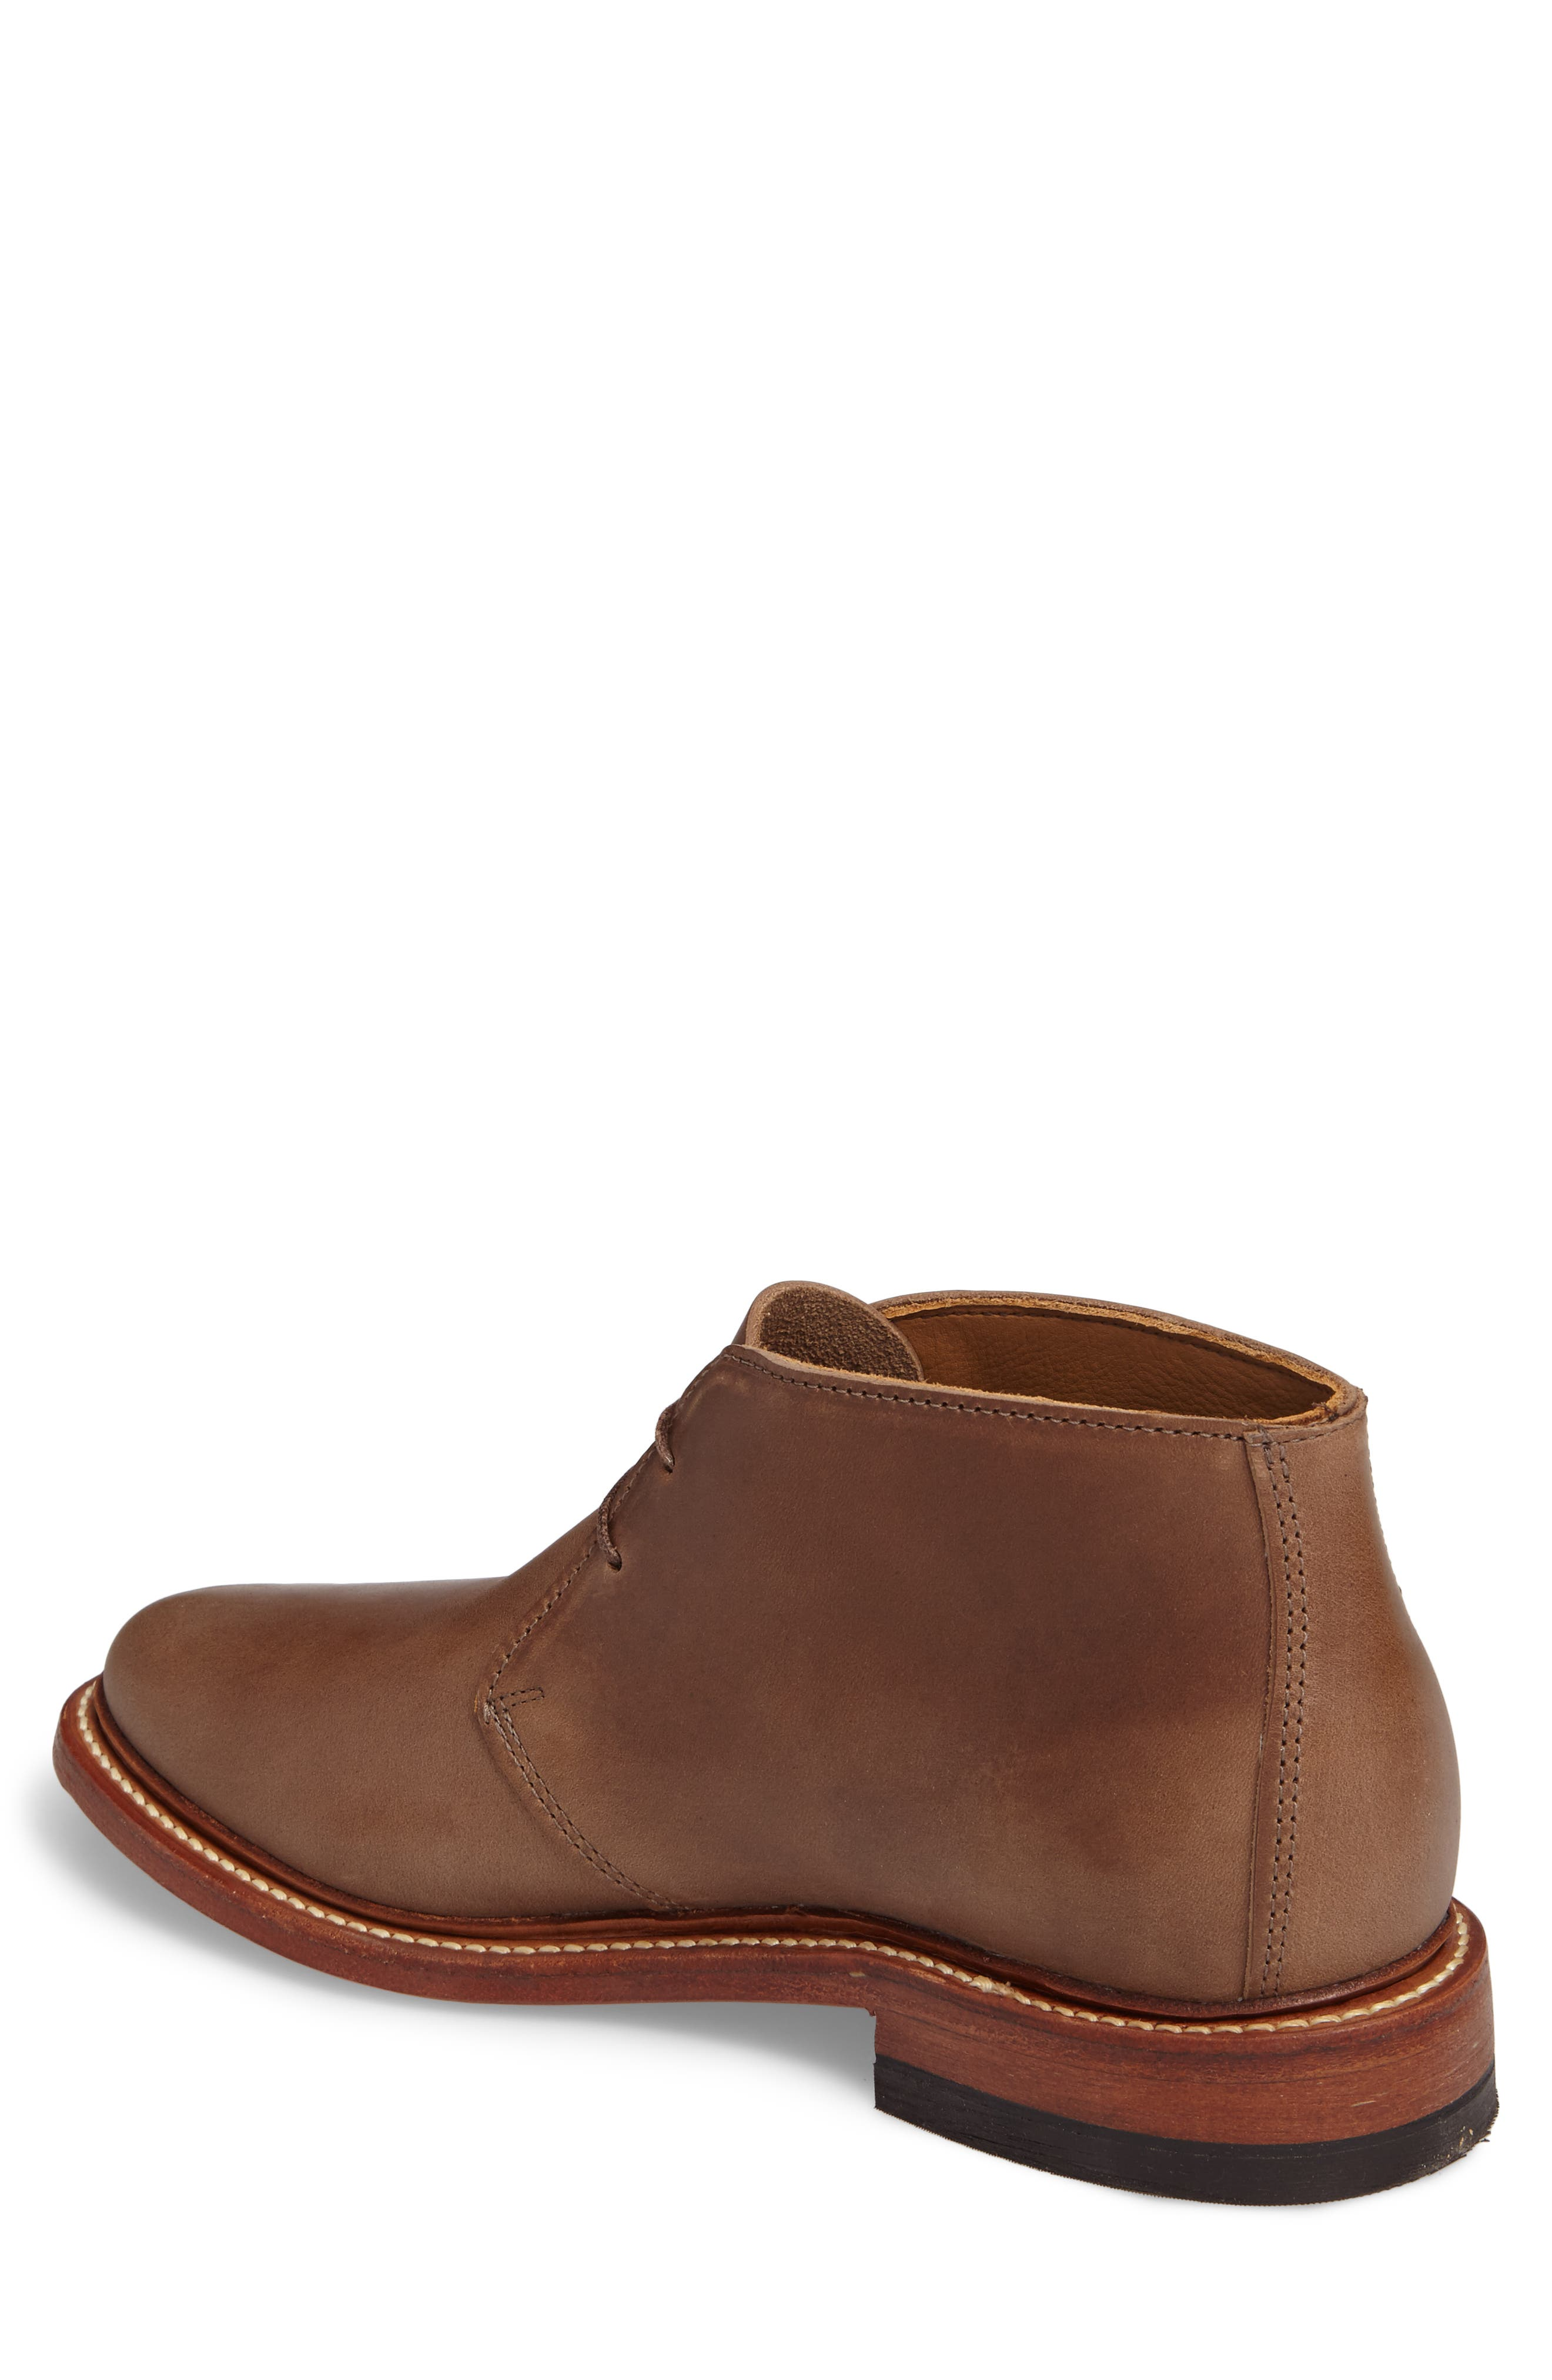 Campus Chukka Boot,                             Alternate thumbnail 2, color,                             Natural Leather